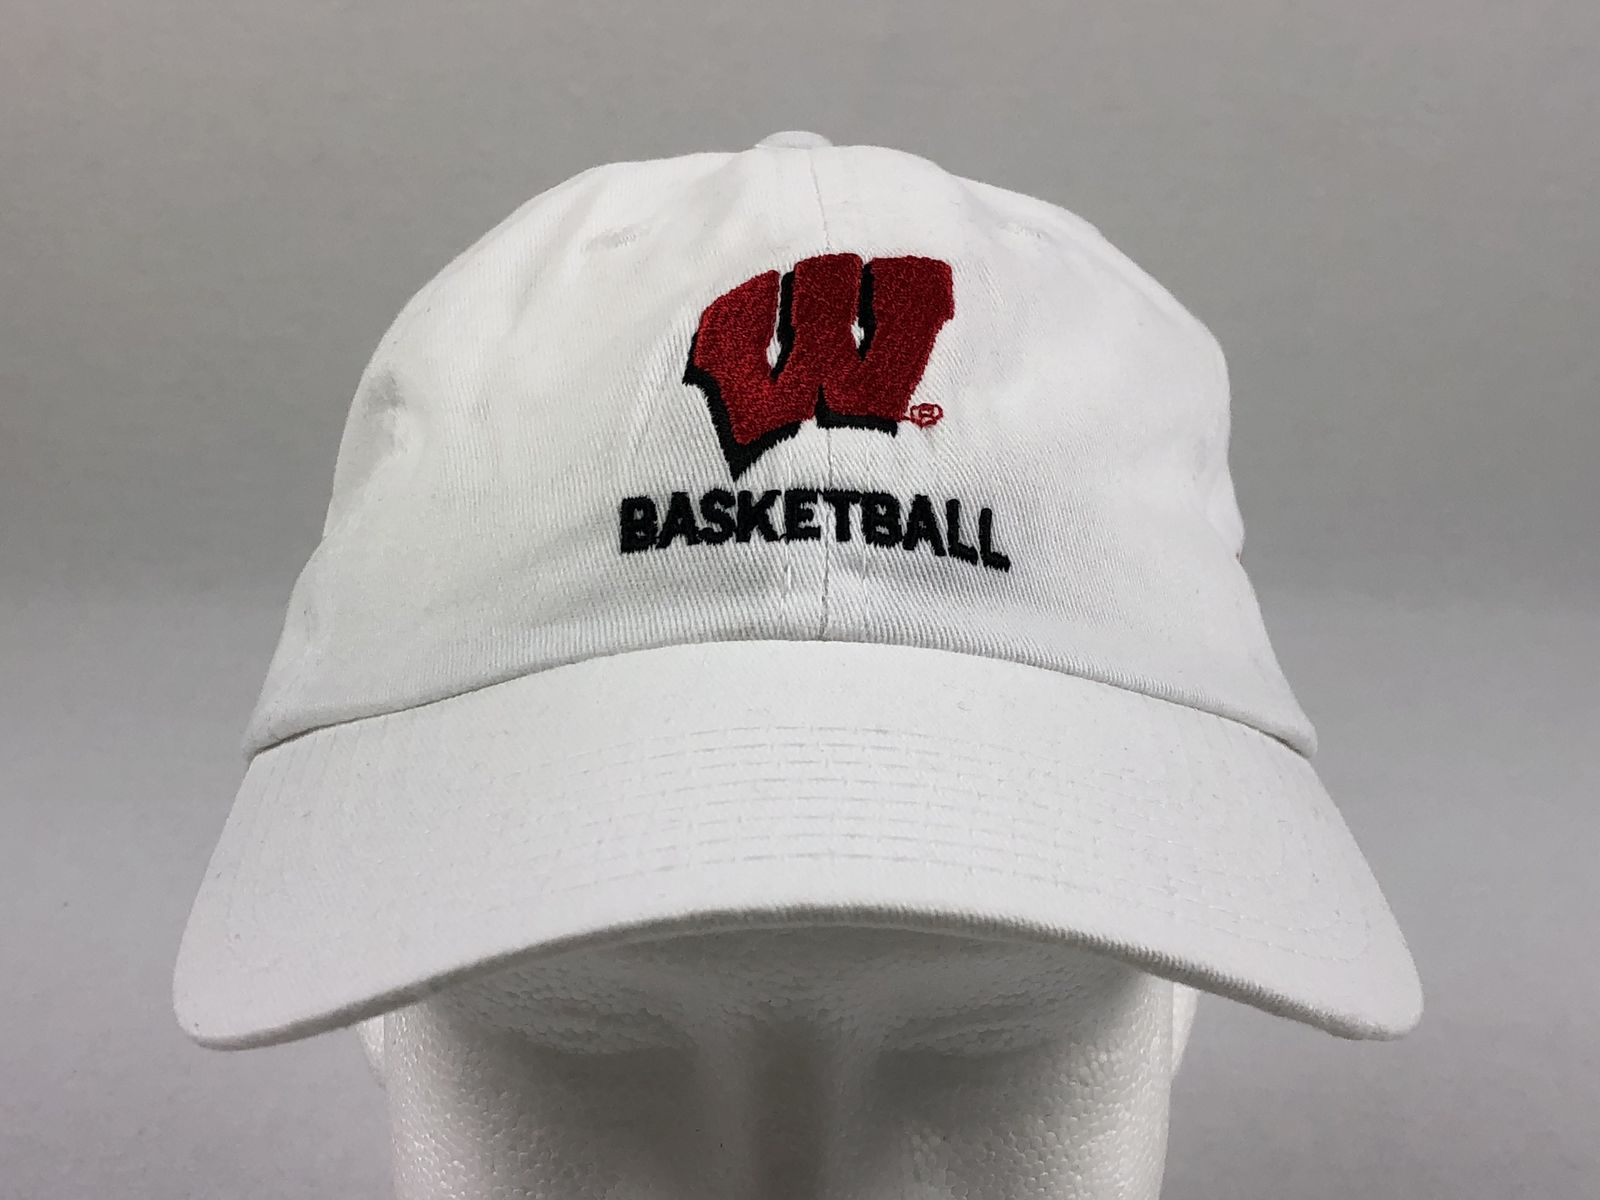 separation shoes 1bd2e 1a833 Details about NEW HeadToToe Wisconsin Badgers - White Adjustable Hat (OSFM)